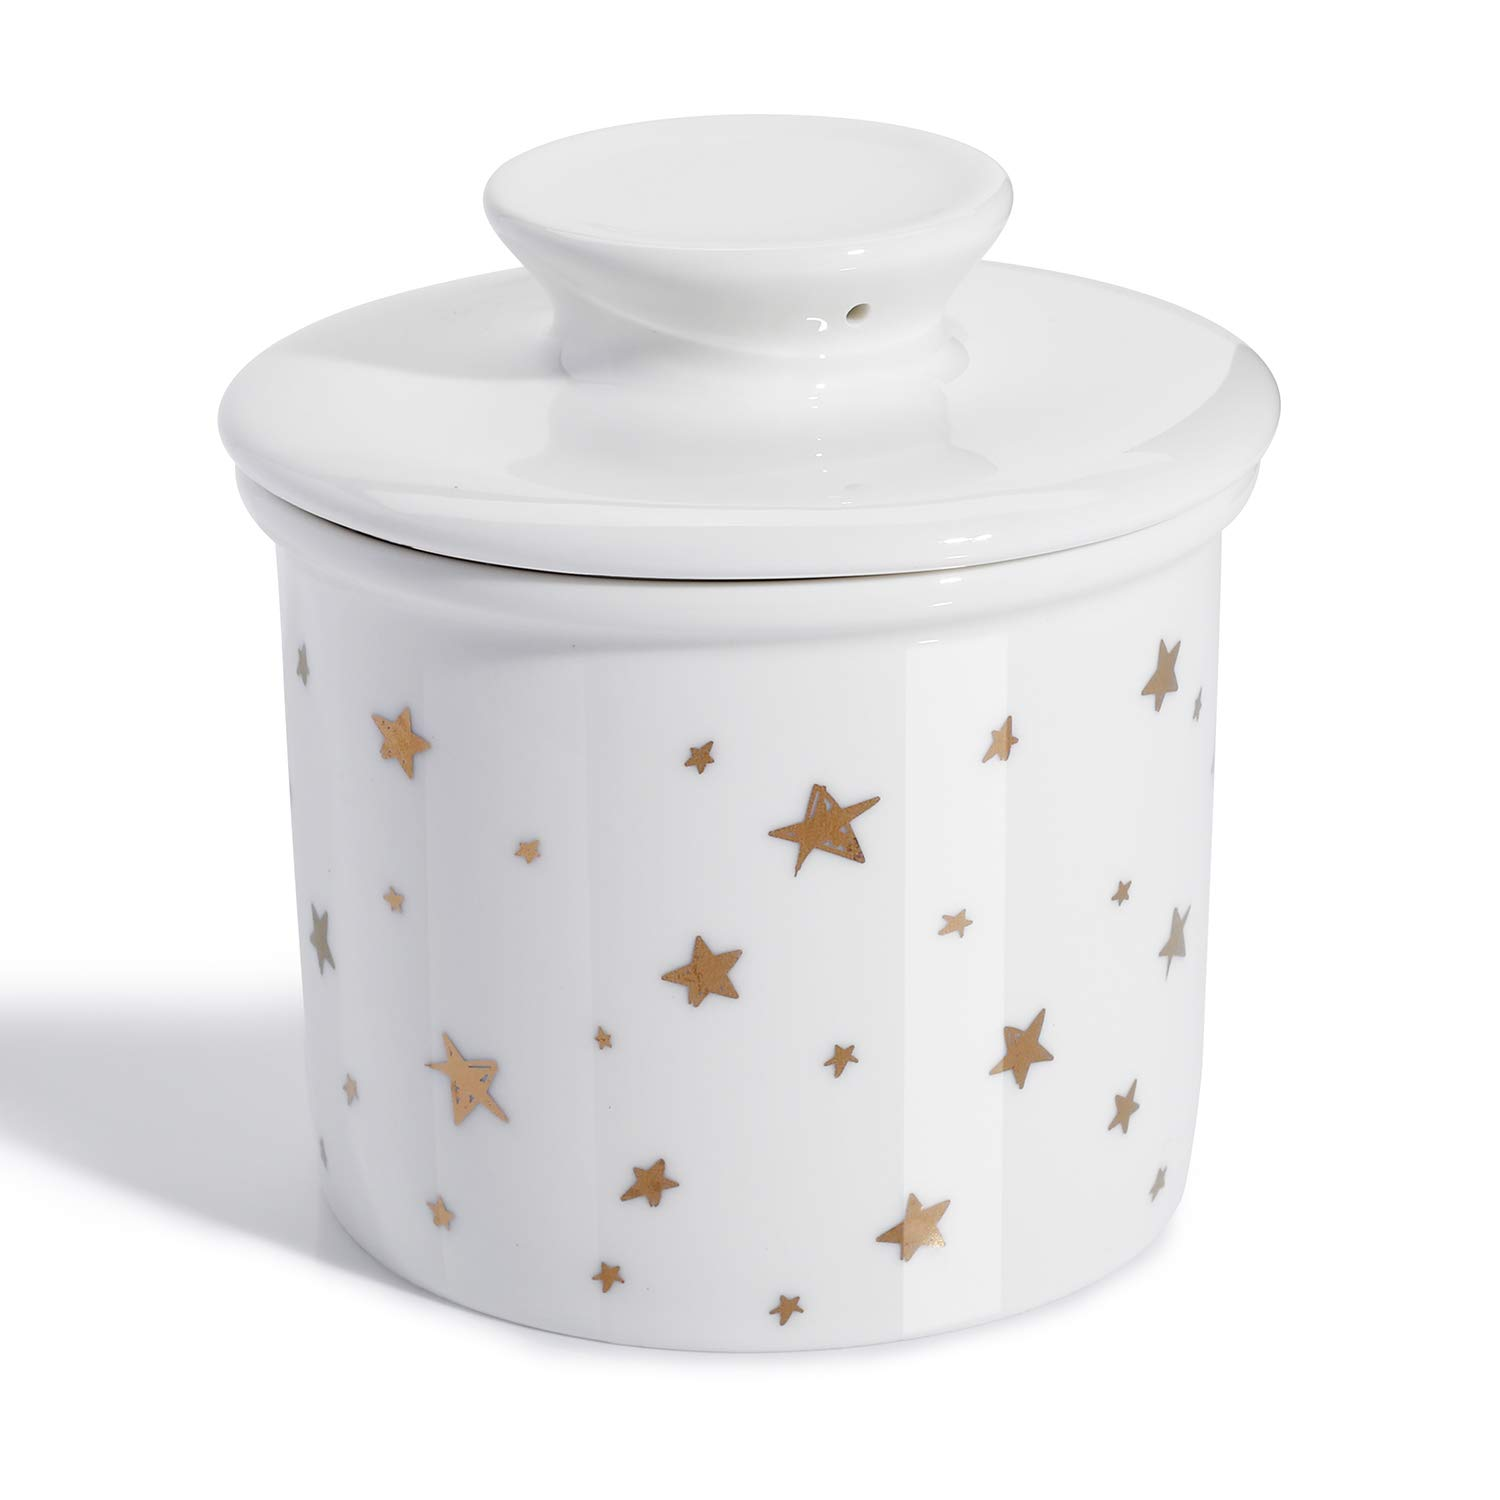 【Flash Deal】Sweese 305.229 Porcelain Butter Keeper Crock - French Butter Dish - No More Hard Butter - Perfect Spreadable Consistency, Star 51L5vsatdrL